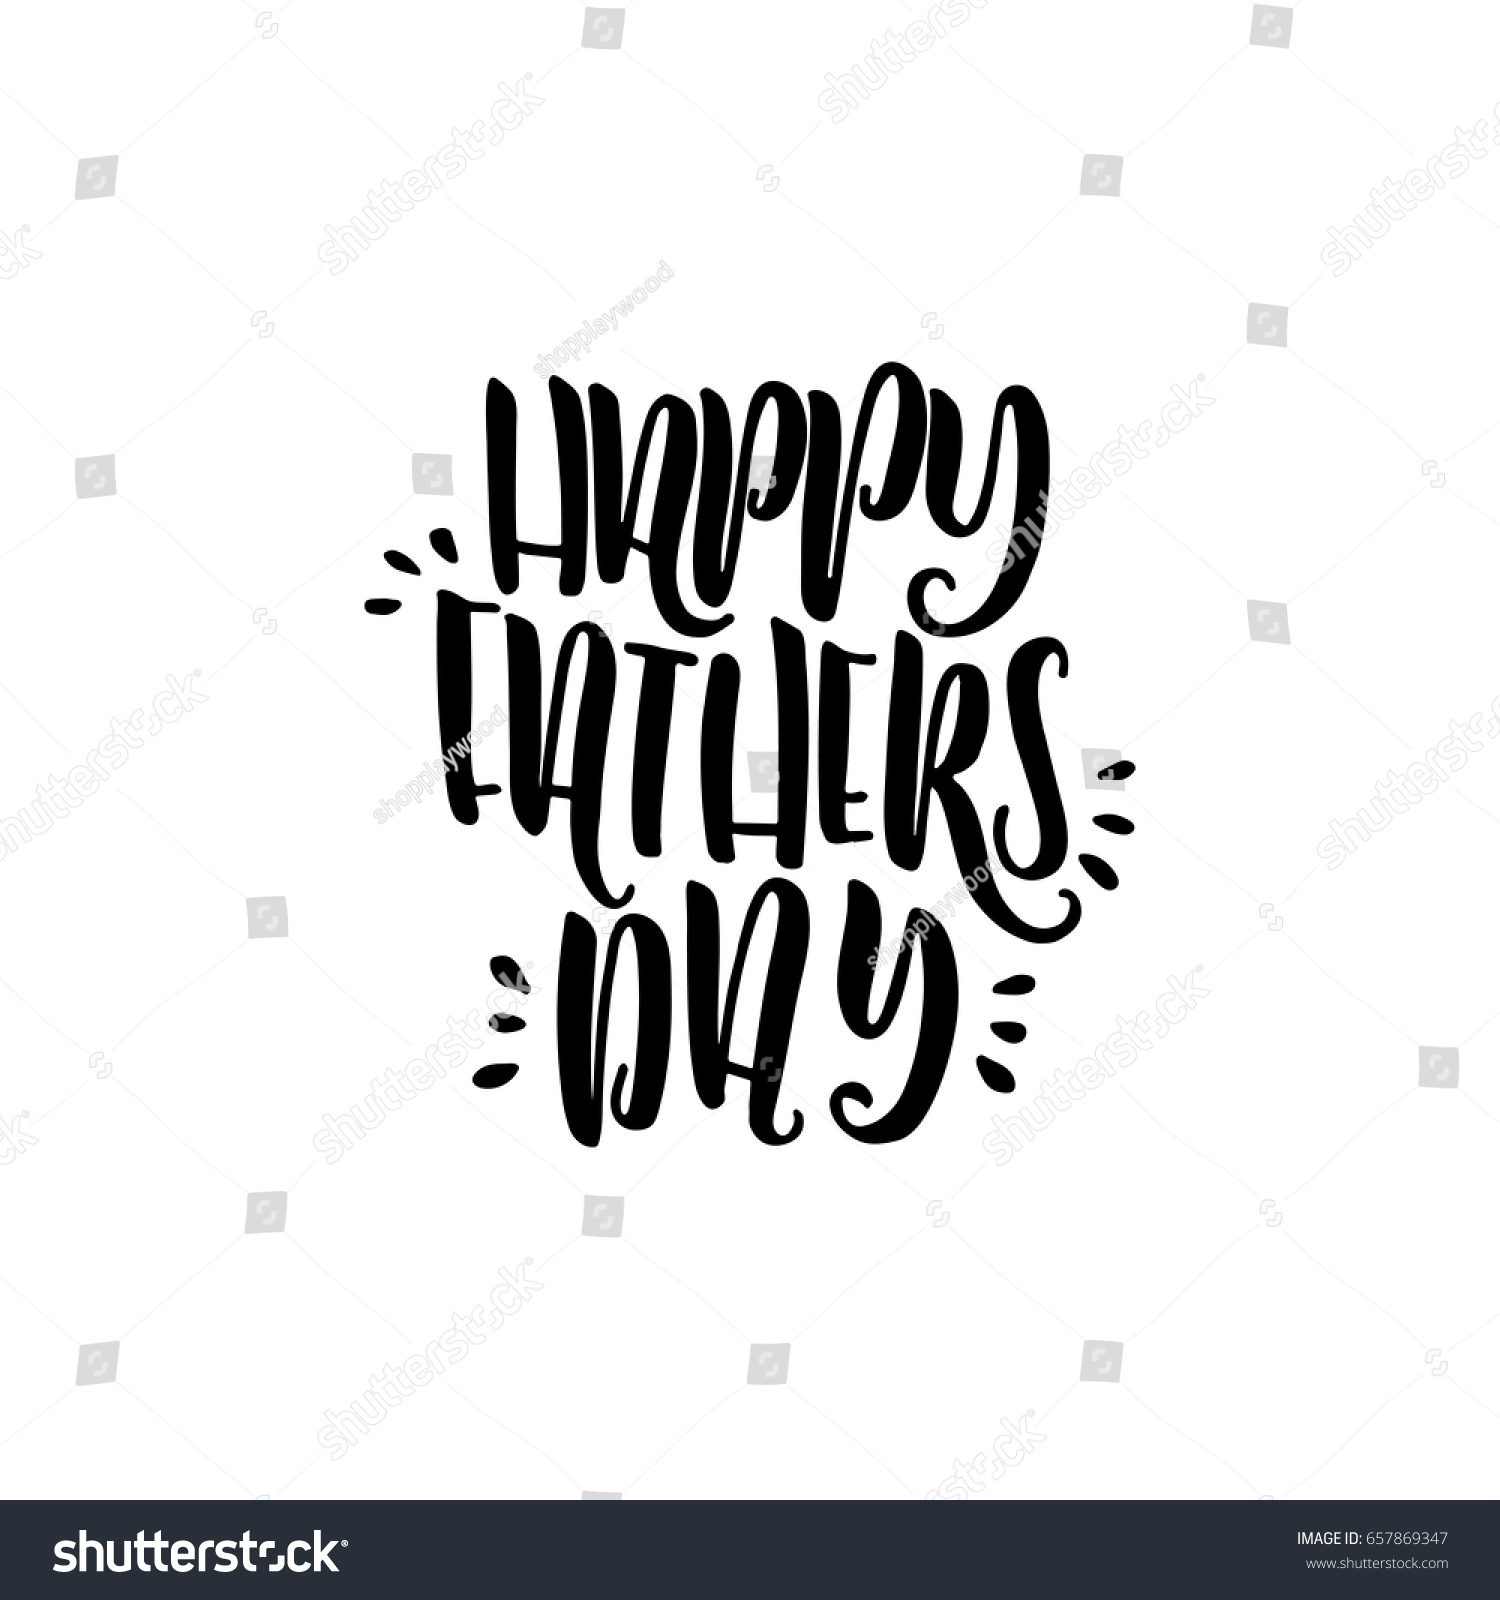 Greeting Phrase Written Feast Father Day Stock Vector 657869347